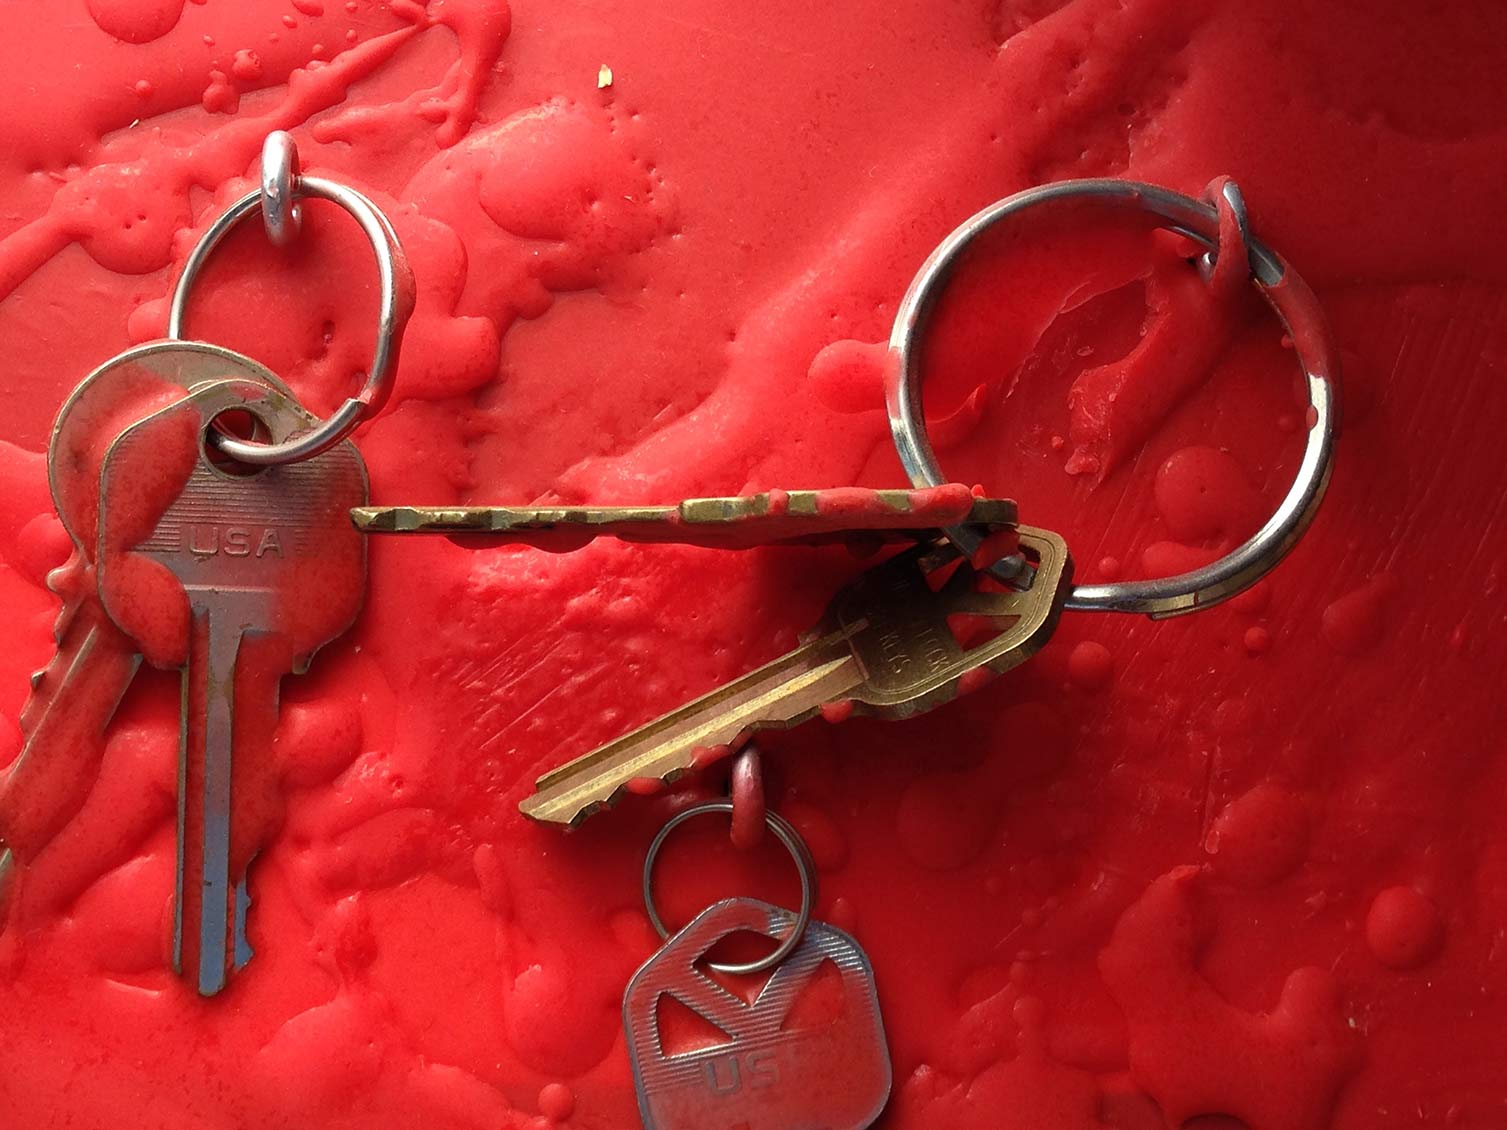 Repossessed homeowner keys drenched in red encaustic wax.